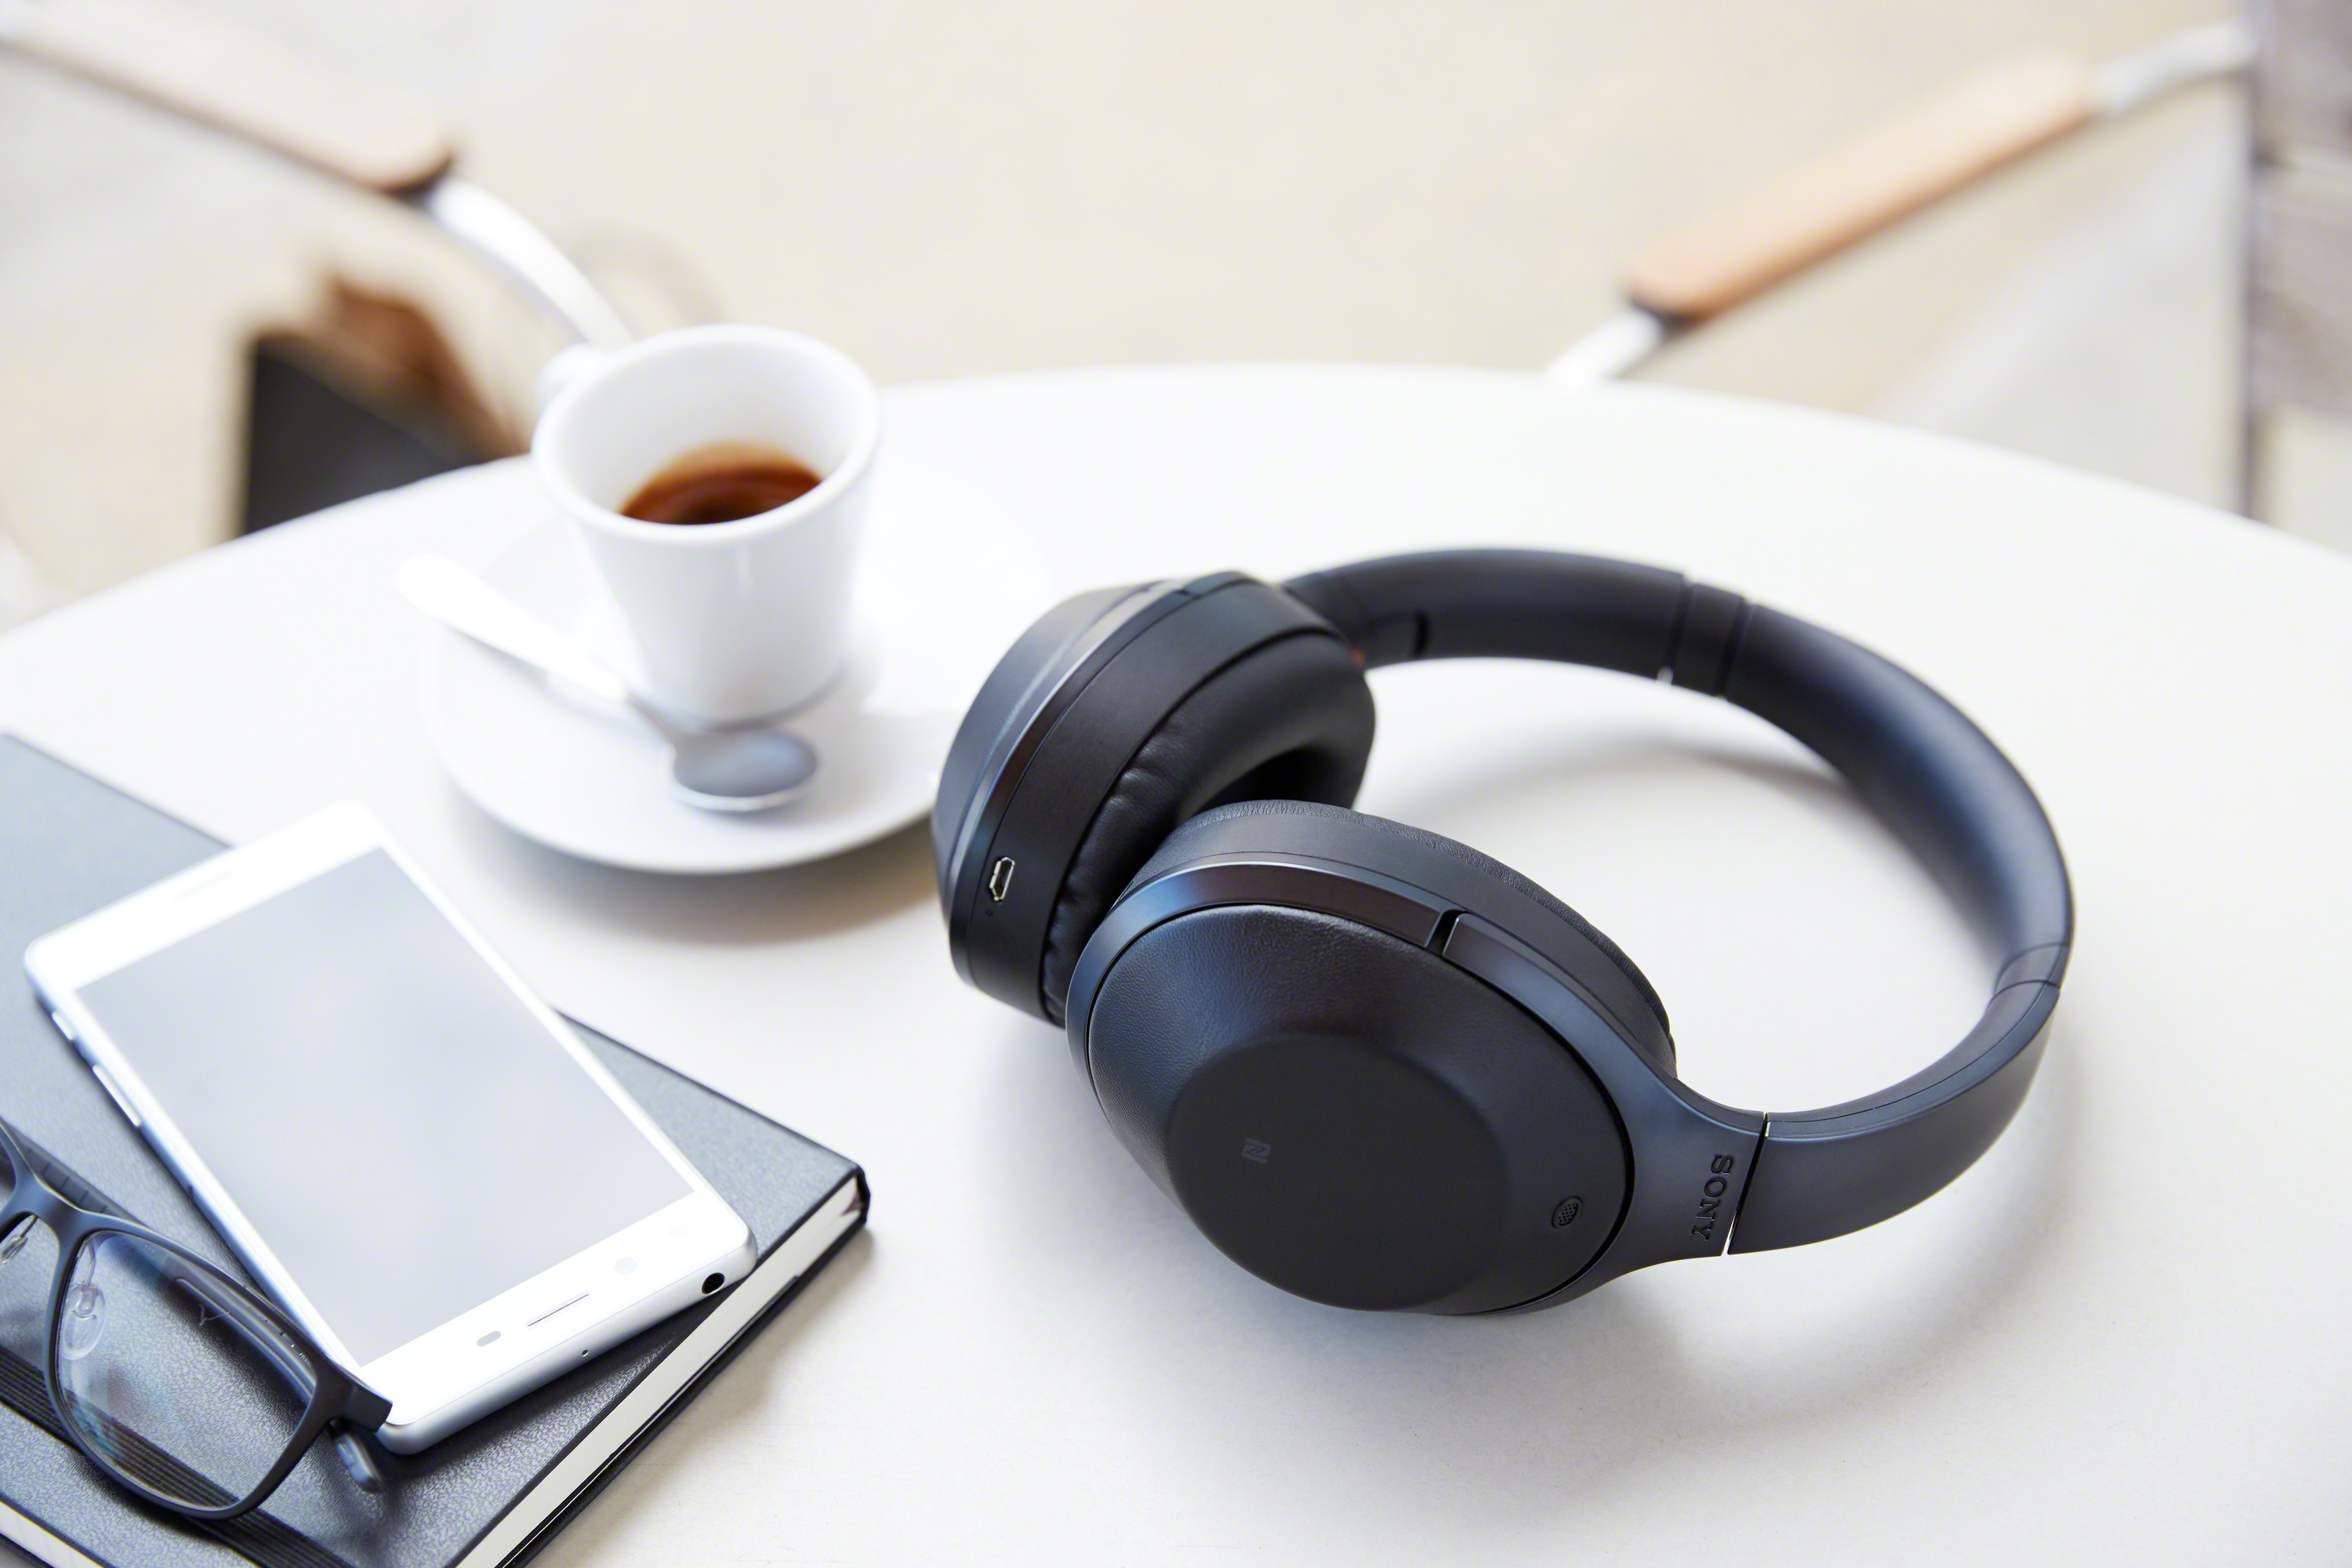 Spoil Your Audio Lover With A New Listening Experience Earphone Sony Xb80bs Extra Bass Sports Bluetooth Mdr 1000x B Wireless Noise Cancelling Hi Fi Headphones